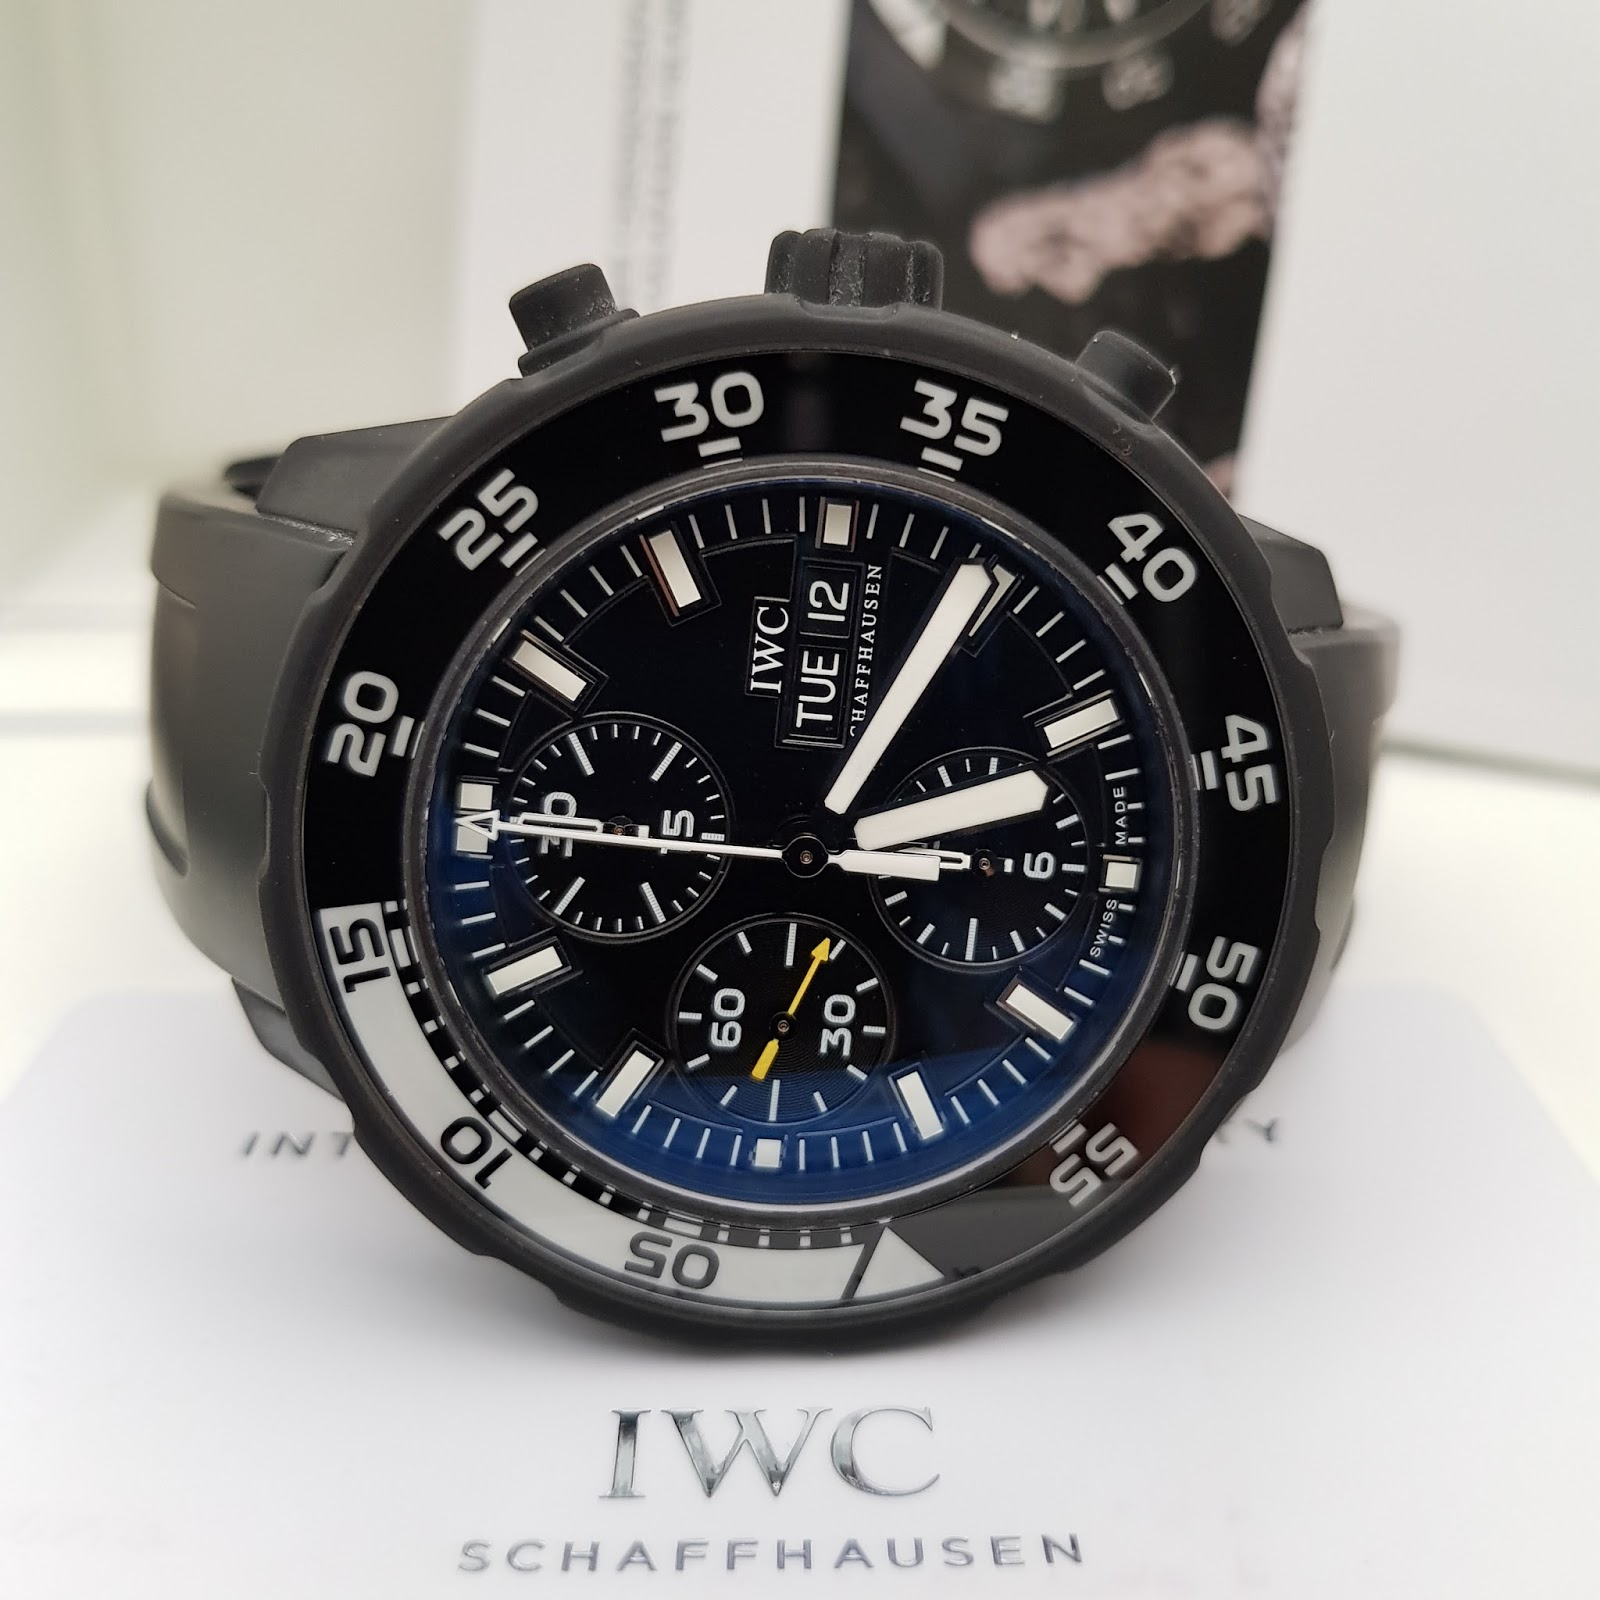 CASE RUBBER COATED STAINLESS STEEL WITH UNI DIRECTION BEZEL STRAP BLACK RUBBER WITH IWC STAINLESS TANG BUCKLE GLASS SAPPHIRE CRYSTAL